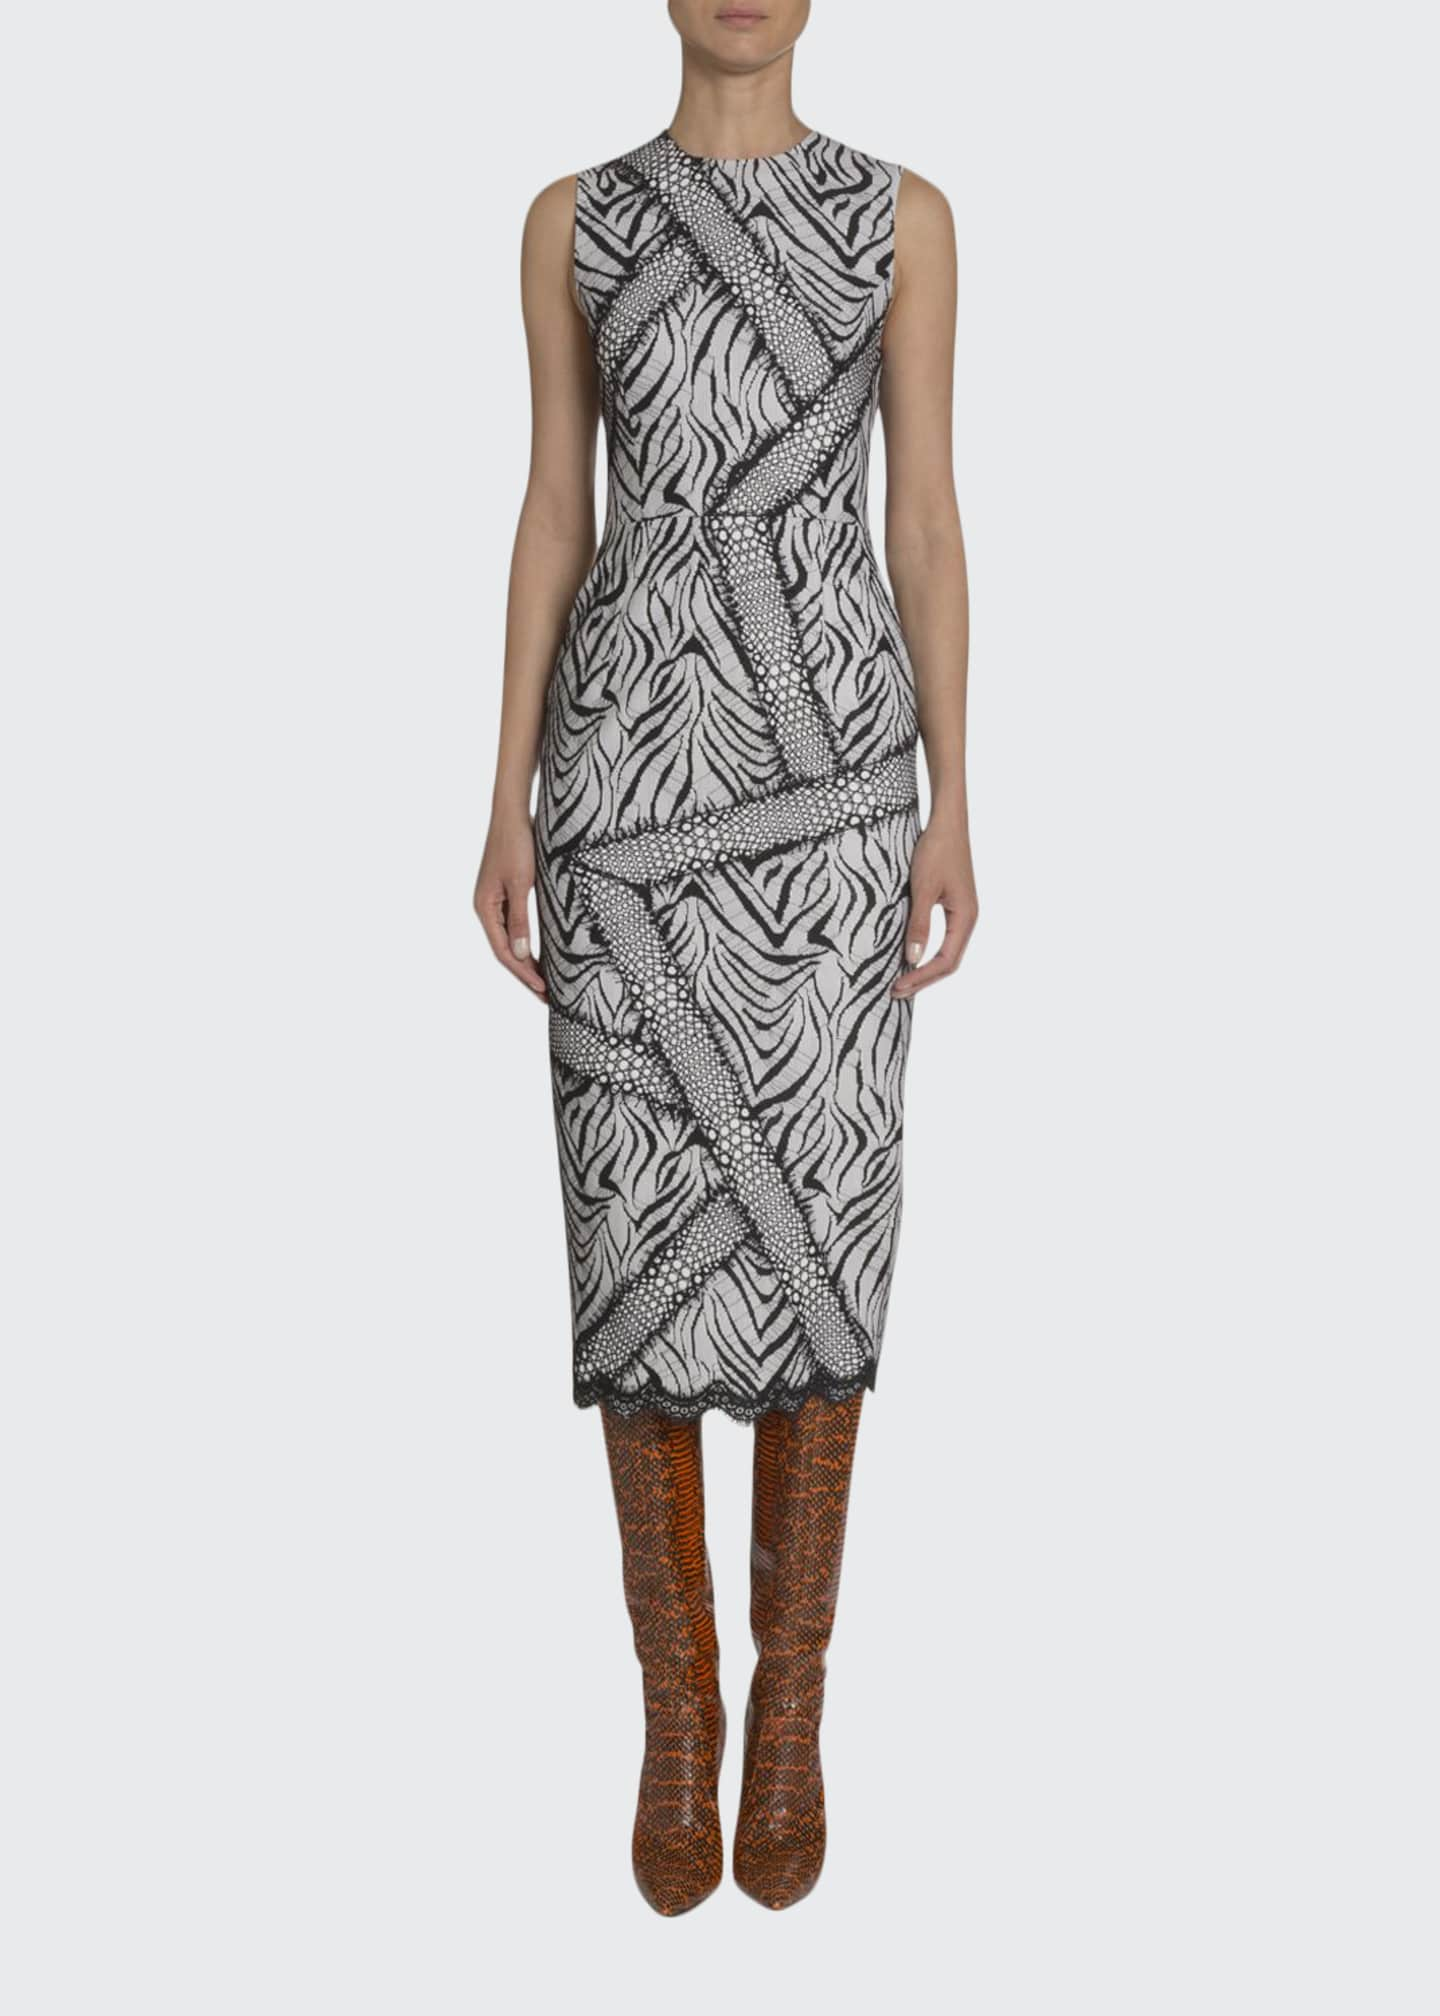 Andrew Gn Abstract Zebra-Print Sheath Dress